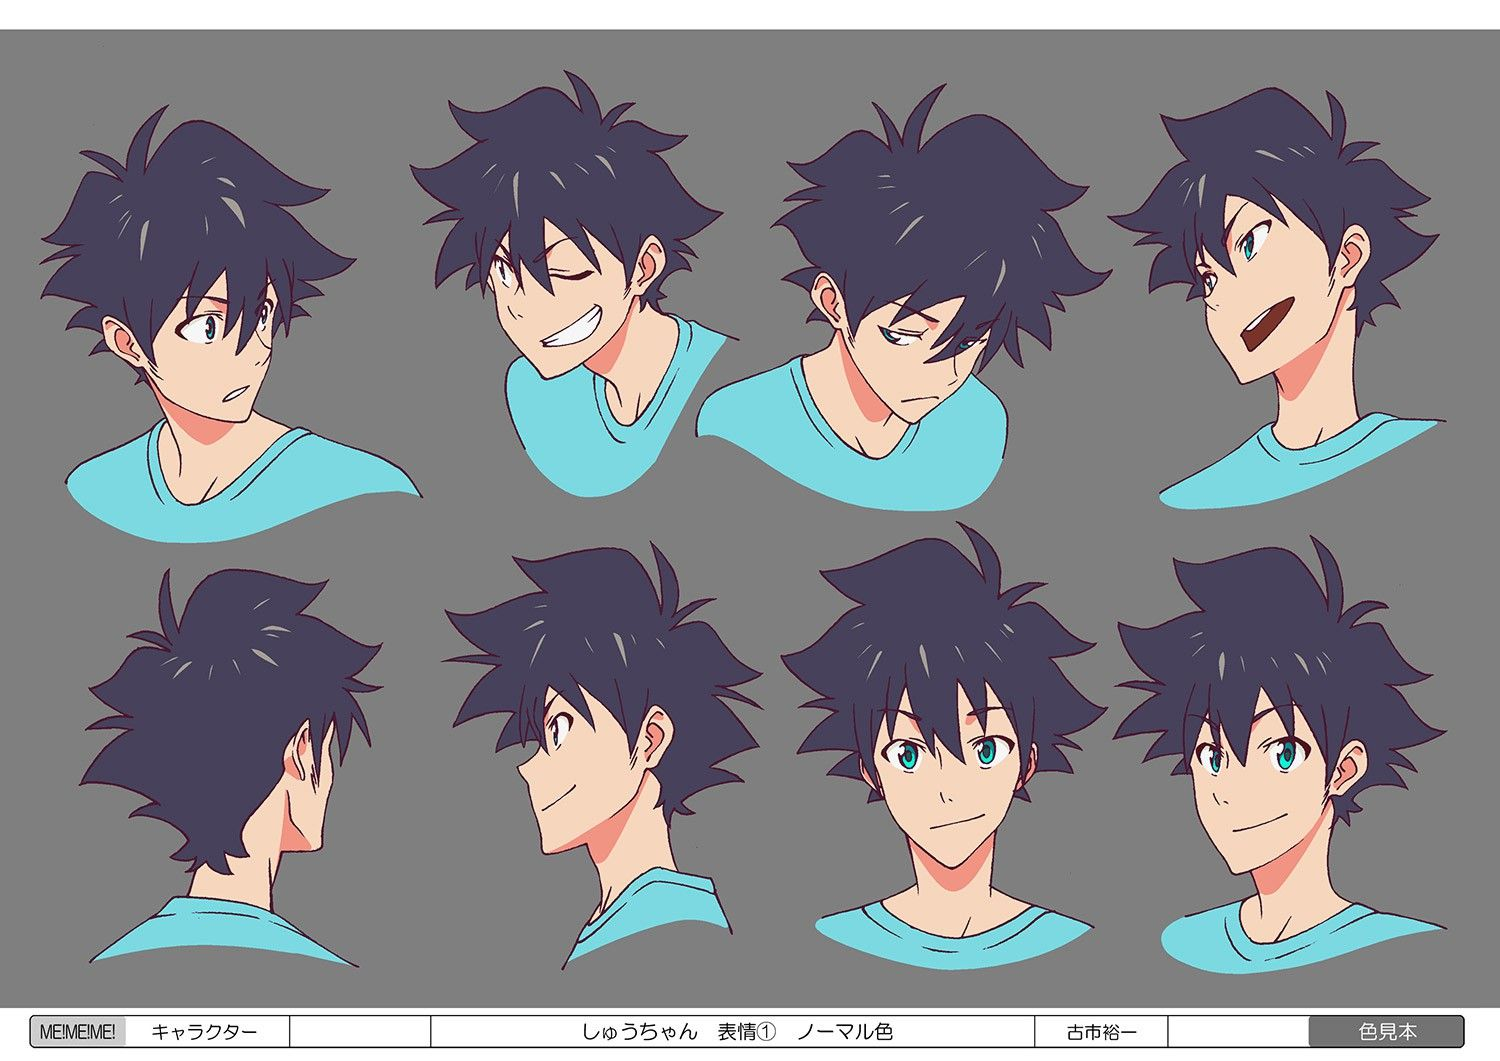 Anime Boy Character Design : Pin by mara lee on cloth reference anime characters